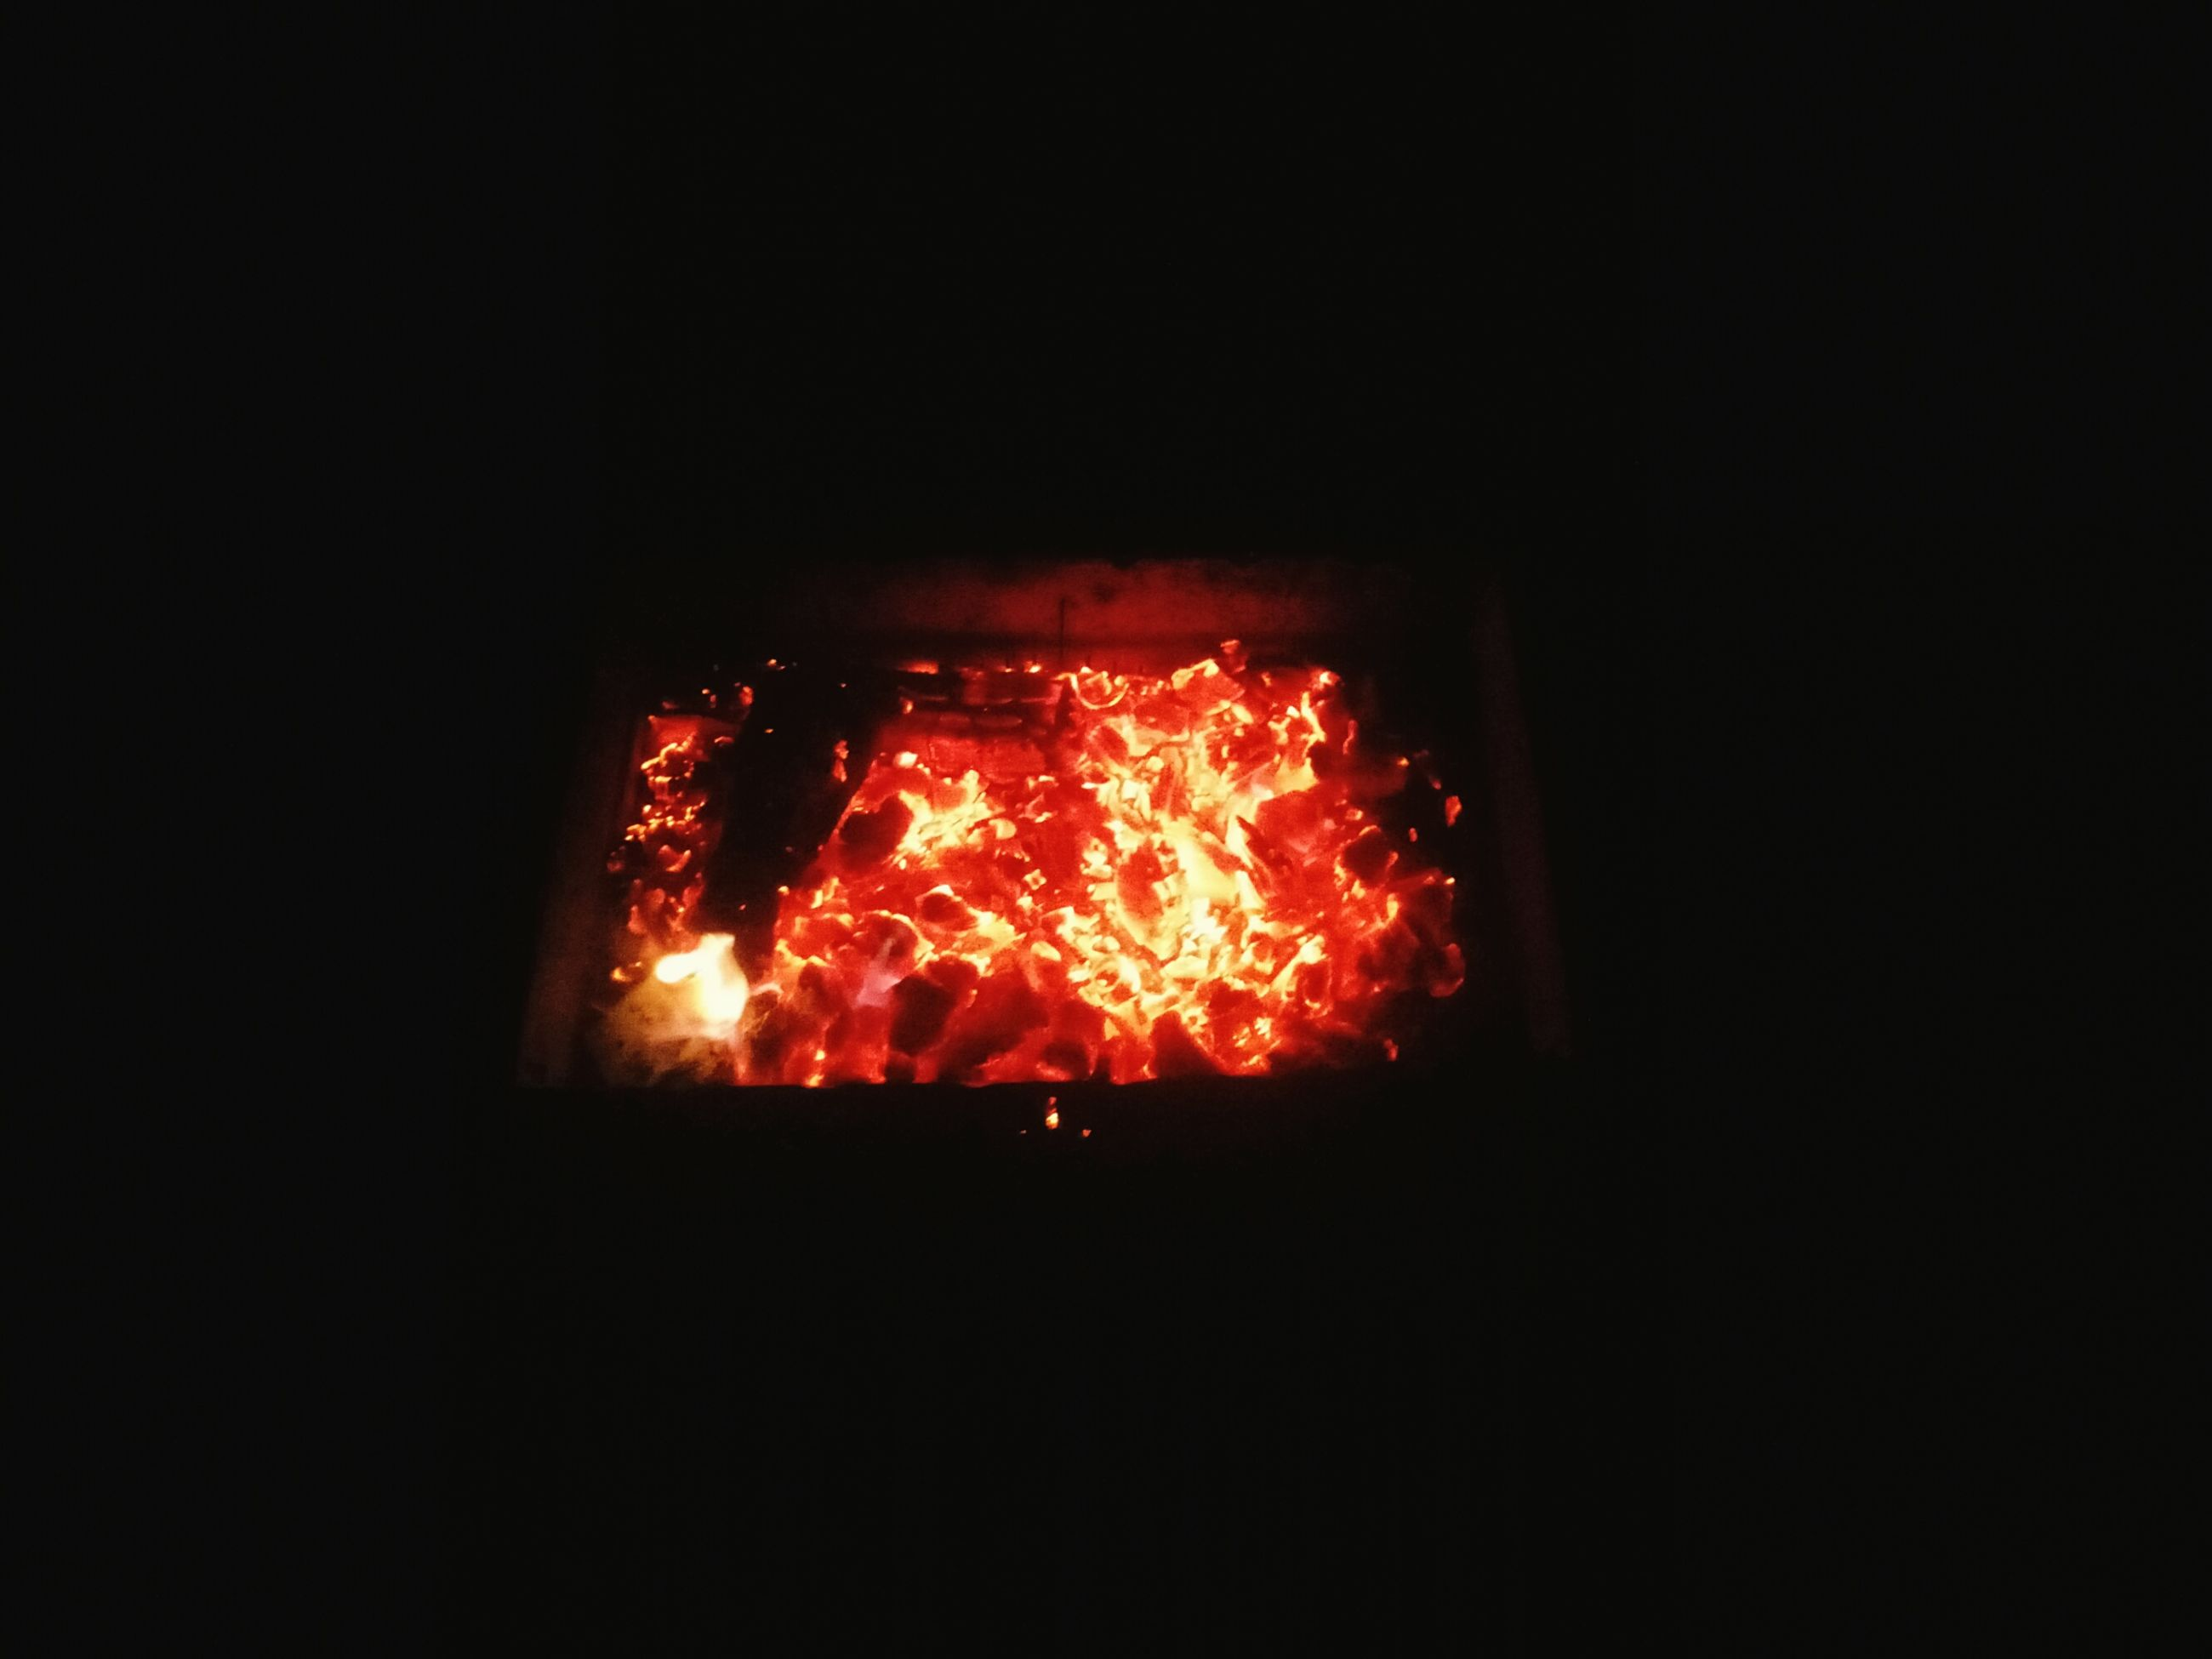 heat - temperature, night, burning, flame, no people, close-up, outdoors